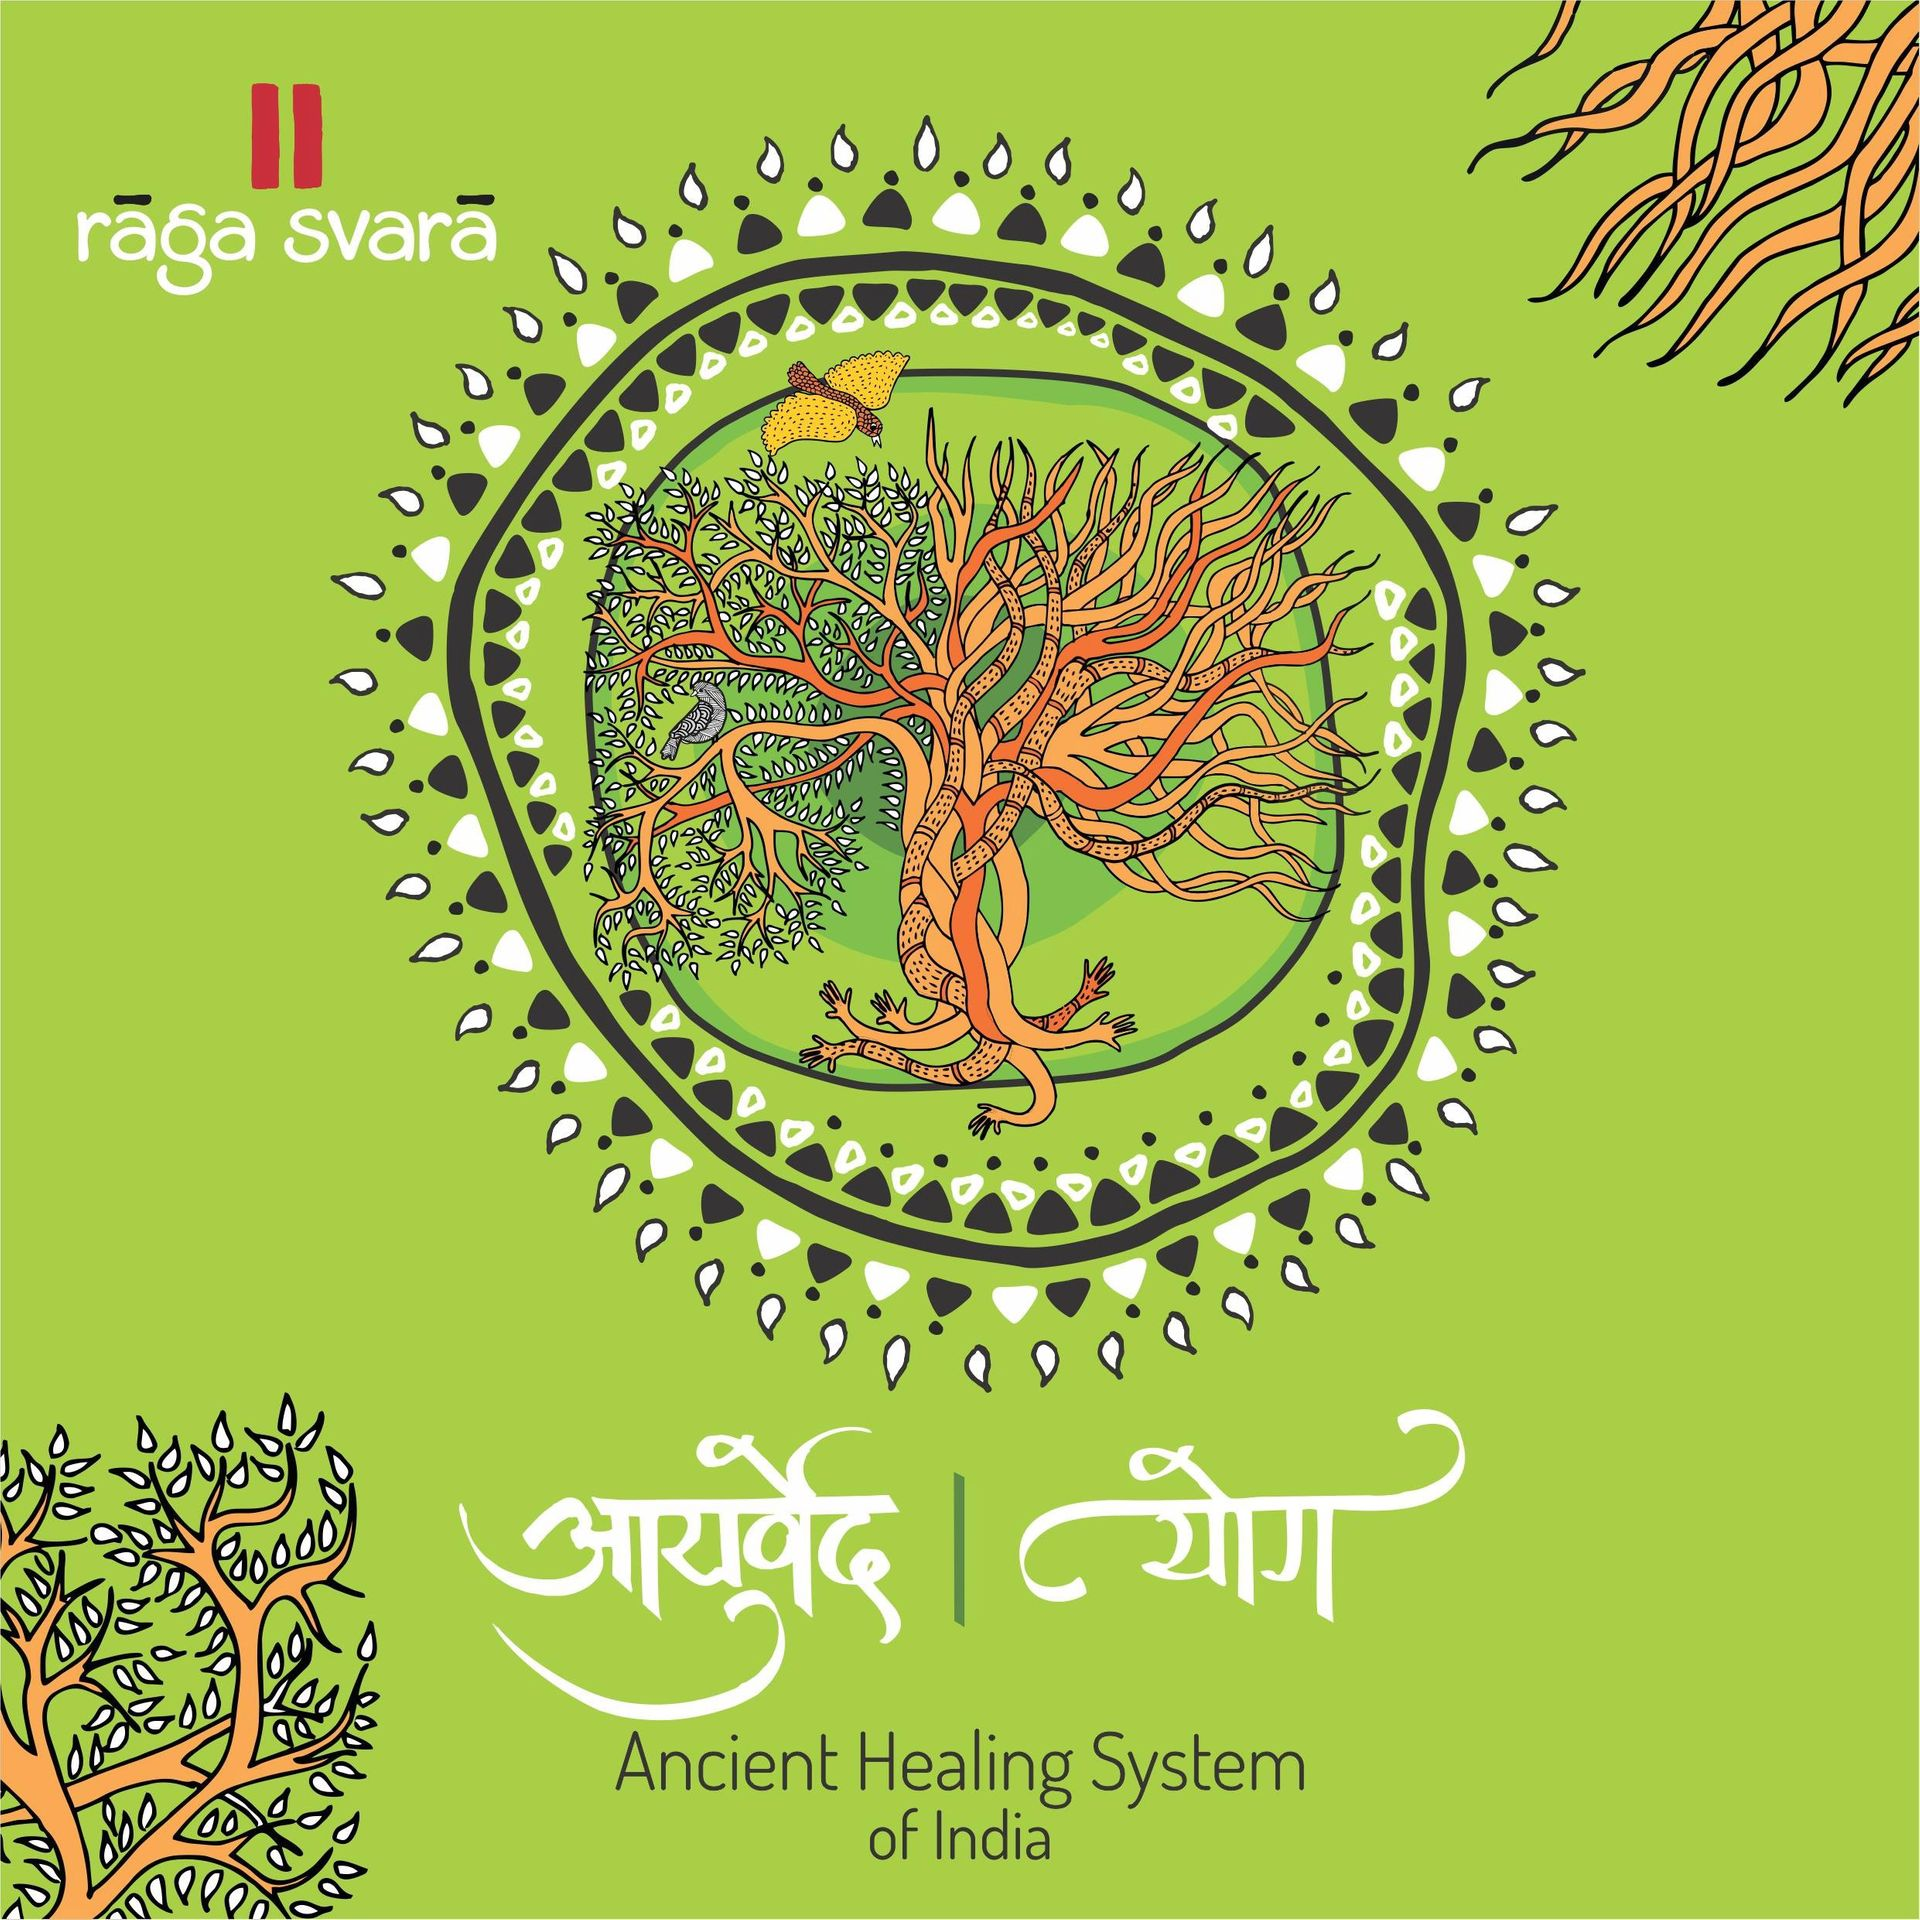 Ancient Healing System — Ayurveda